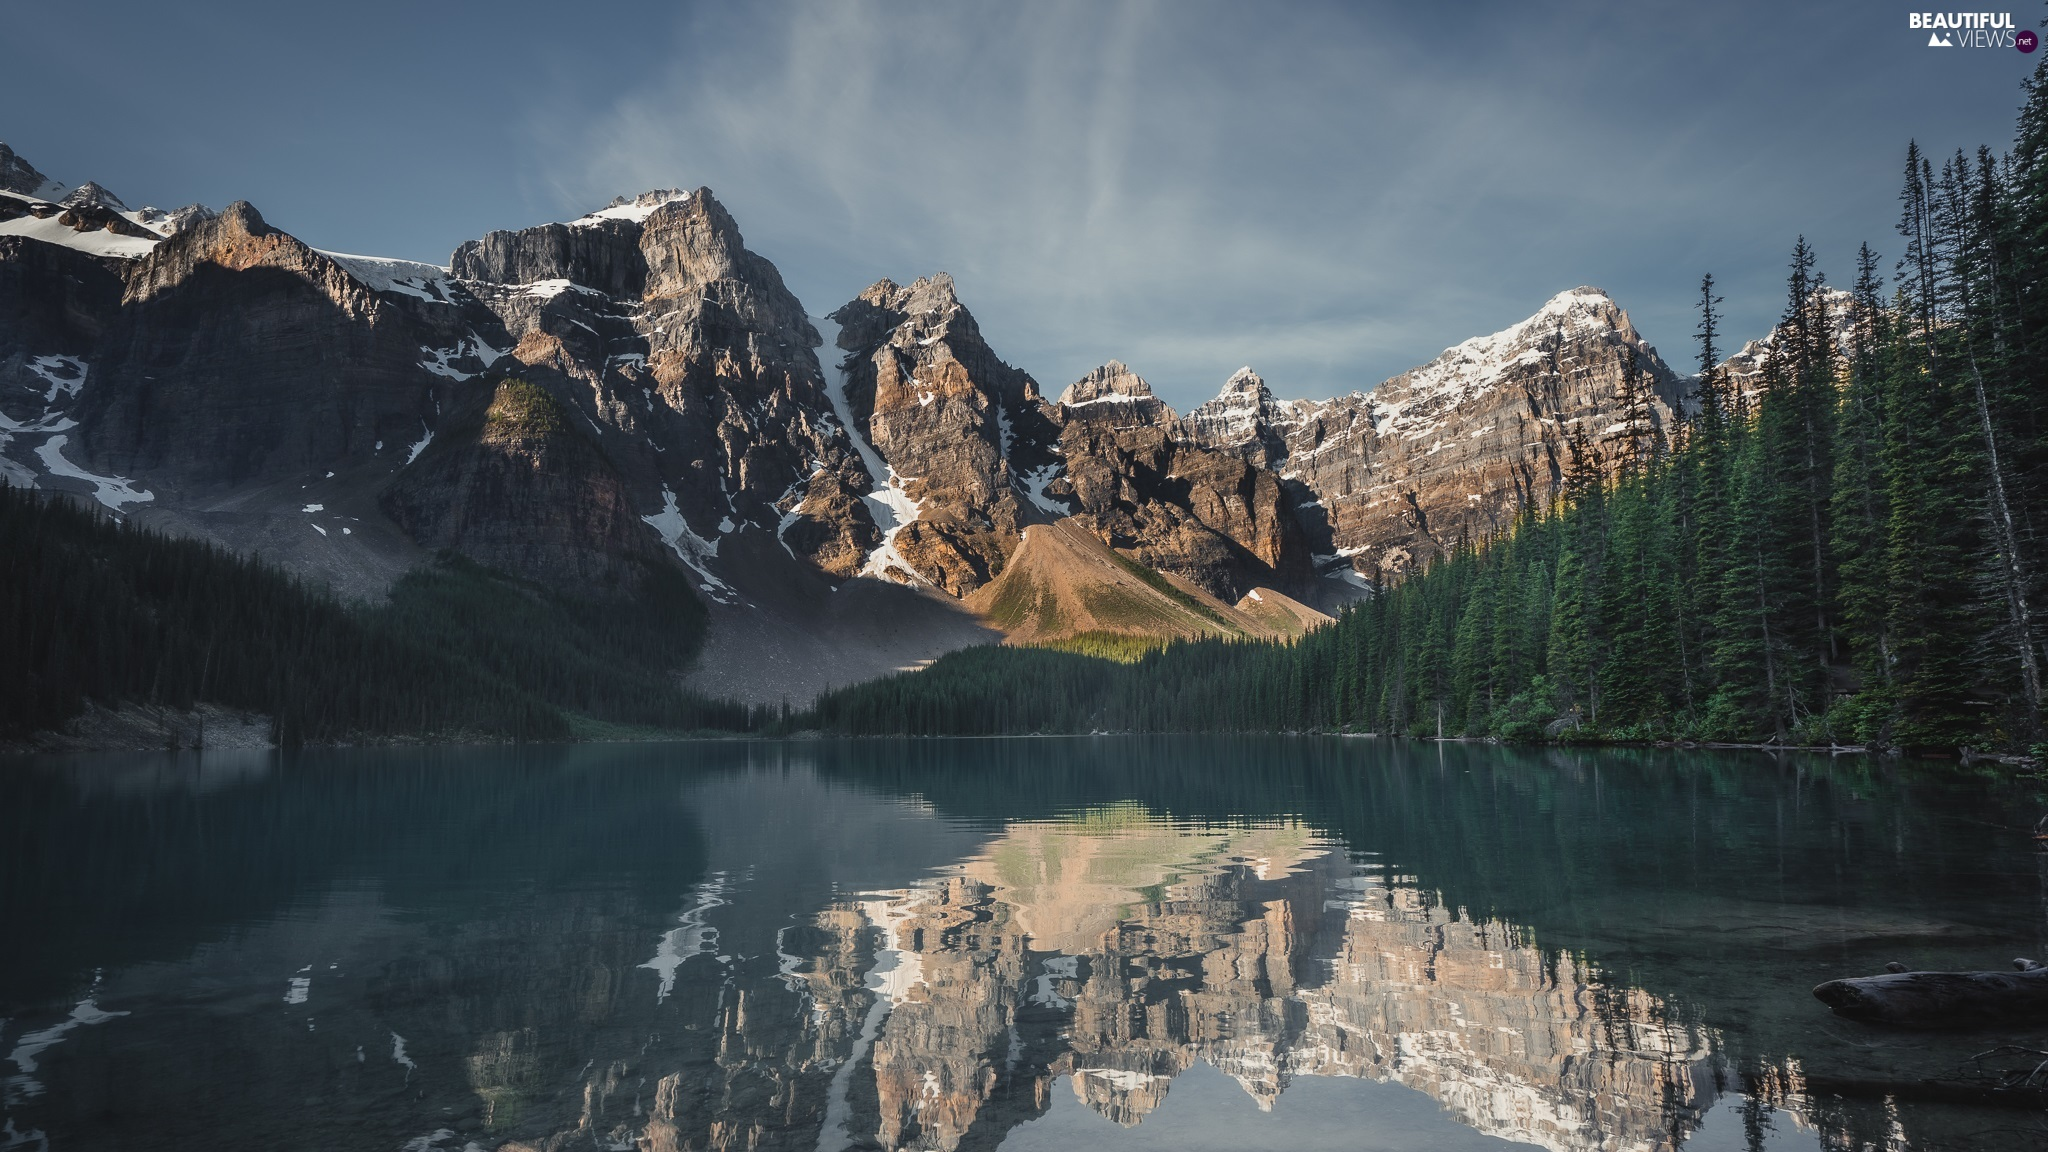 Moraine Lake, lake, woods, trees, Province of Alberta, Canada, Mountains, Banff National Park, viewes